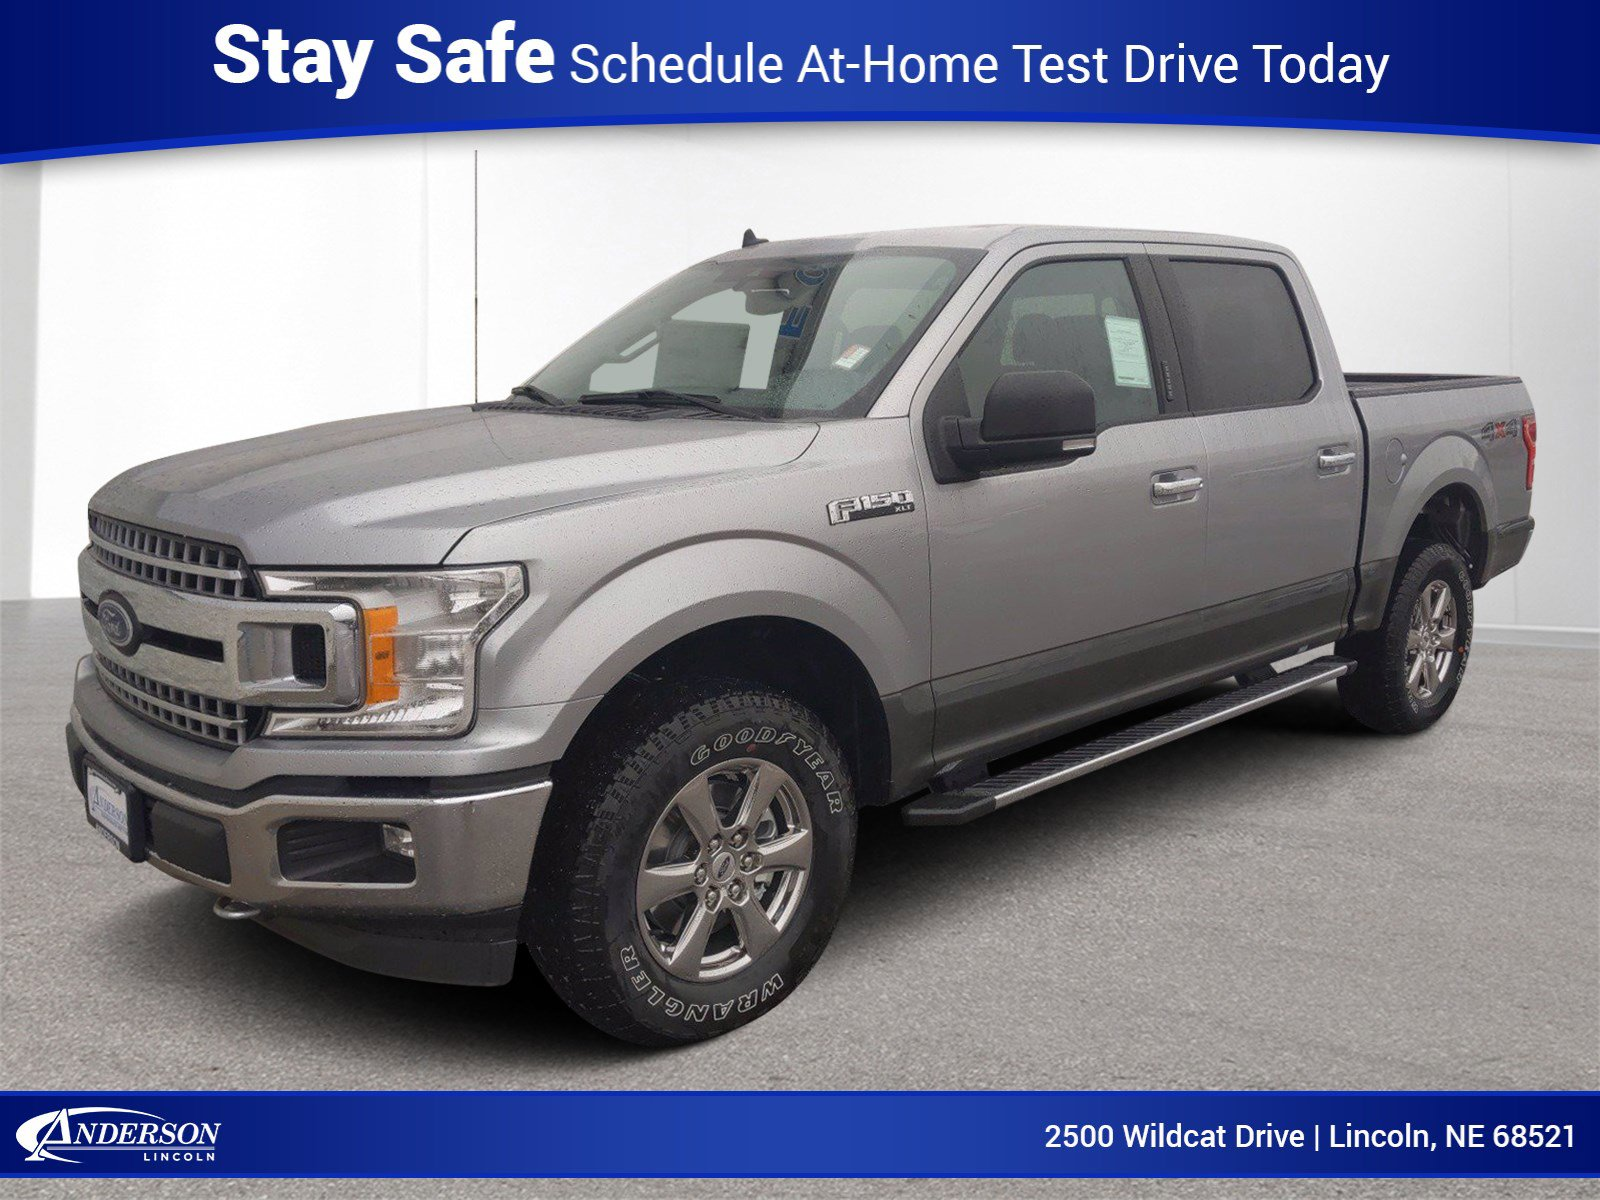 New 2020 Ford F-150  Stock: L22970